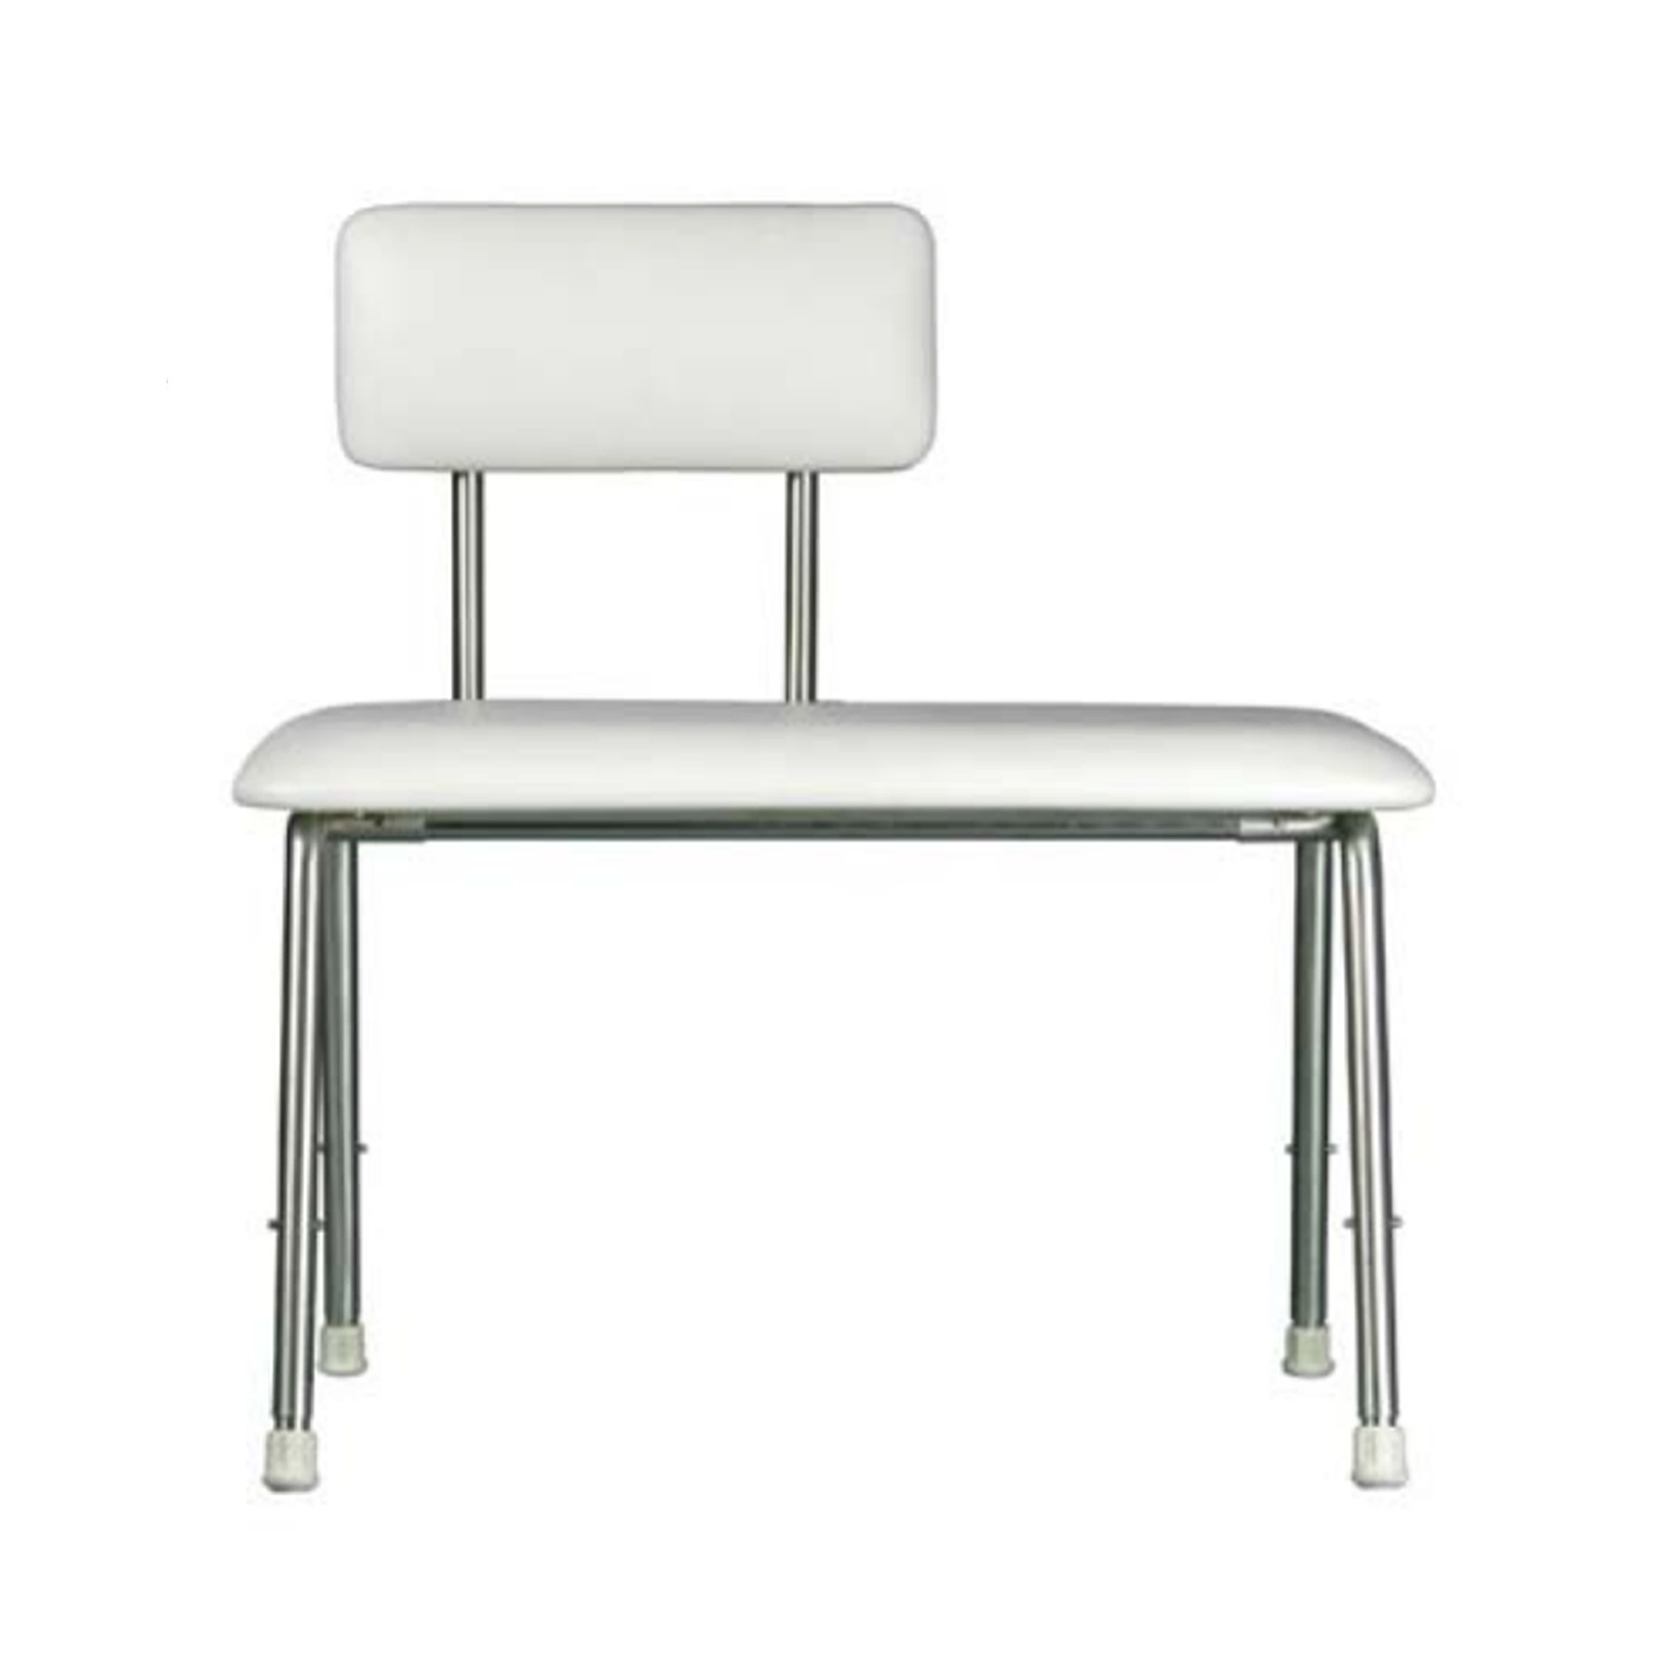 transfer chair shower bedroom commode portable clamp on tub seat sh 416 access able designs inc